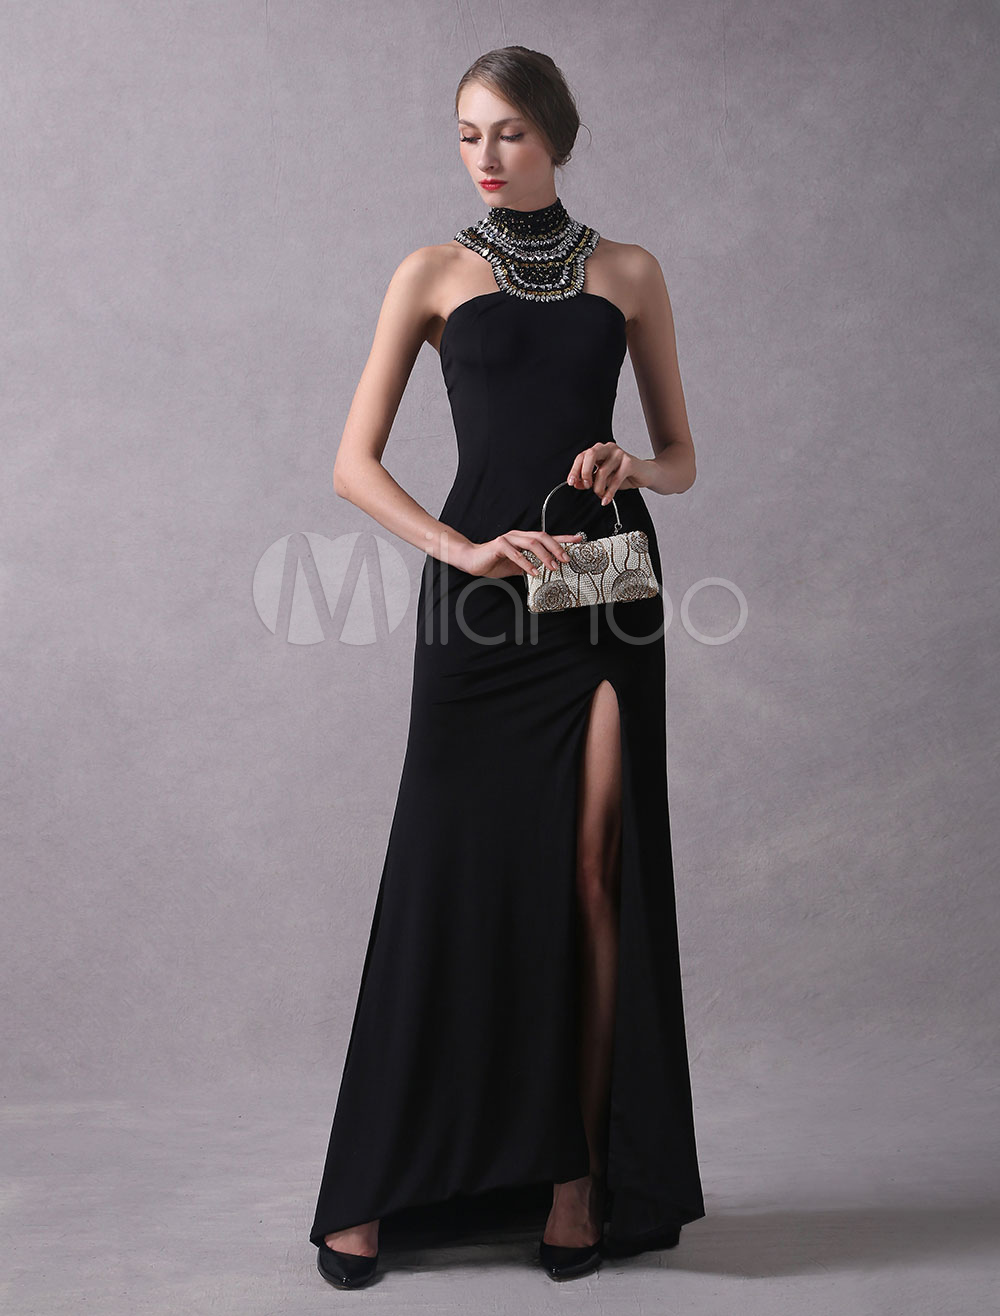 Buy Black Evening Dresses Sexy Split High Collar Evening Gown Beaded Sheath Back Design Formal Dress With Train for $178.49 in Milanoo store